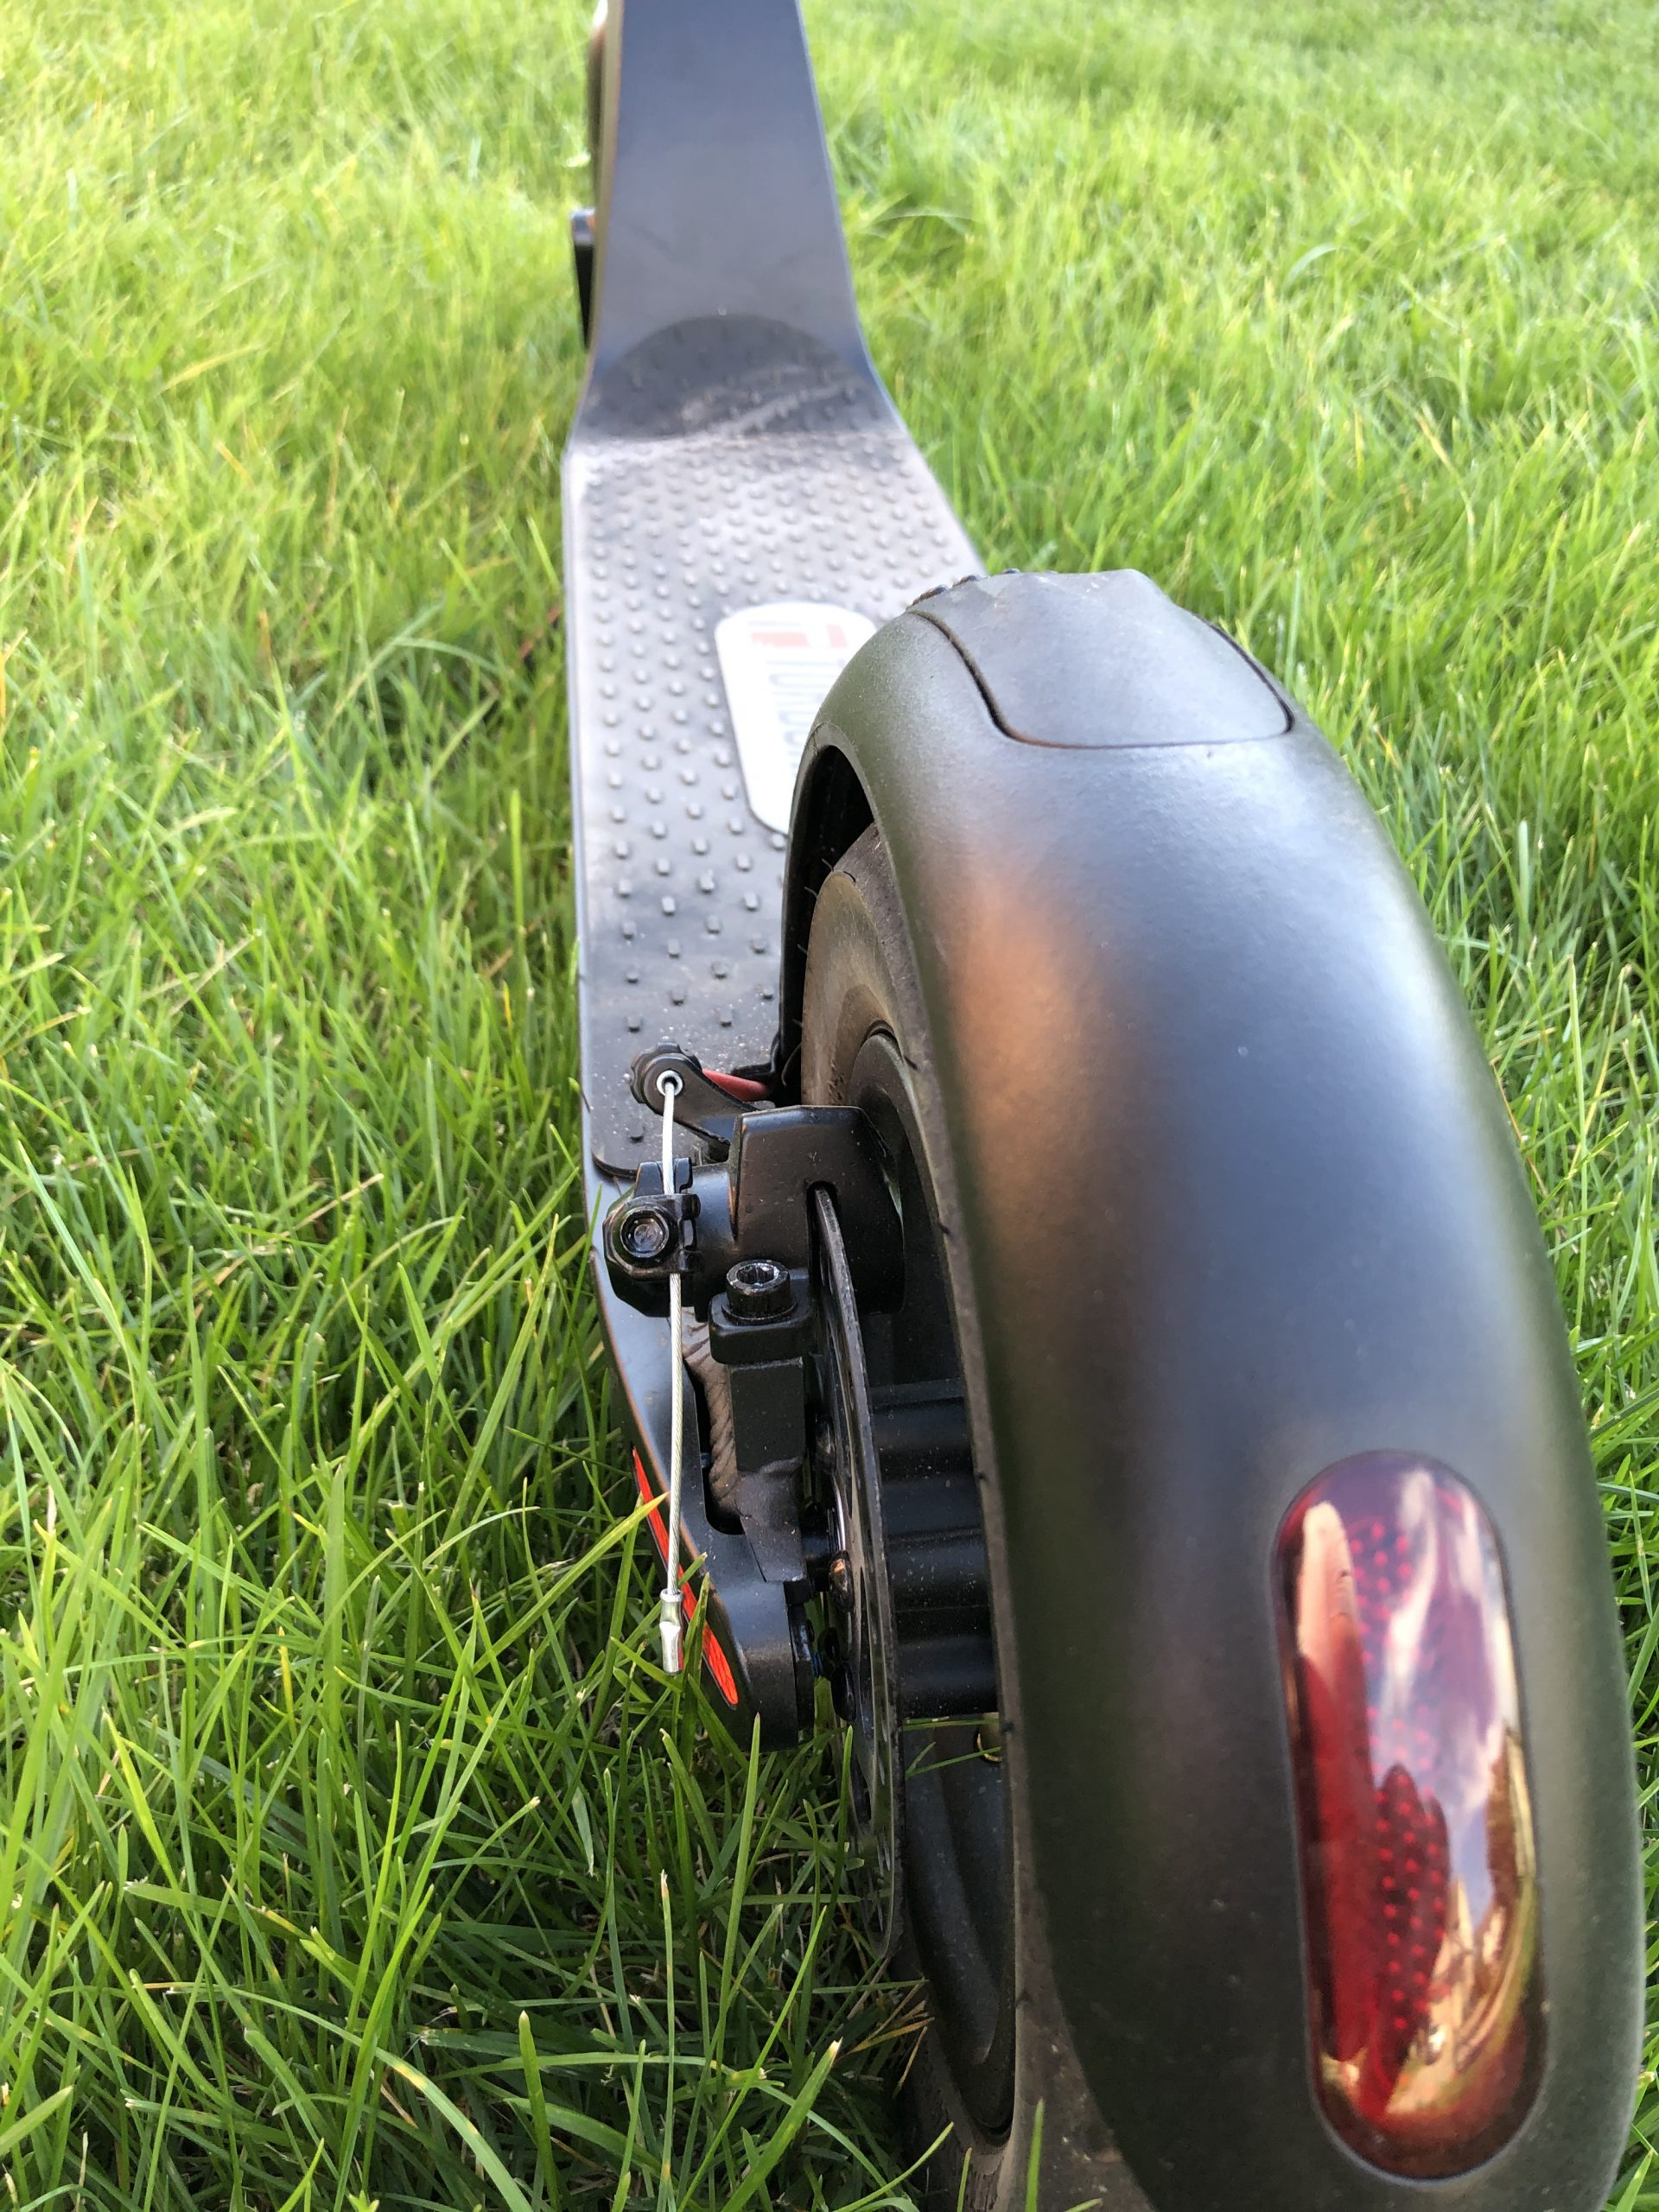 Turboant X7 Pro Electric Scooter Review 2